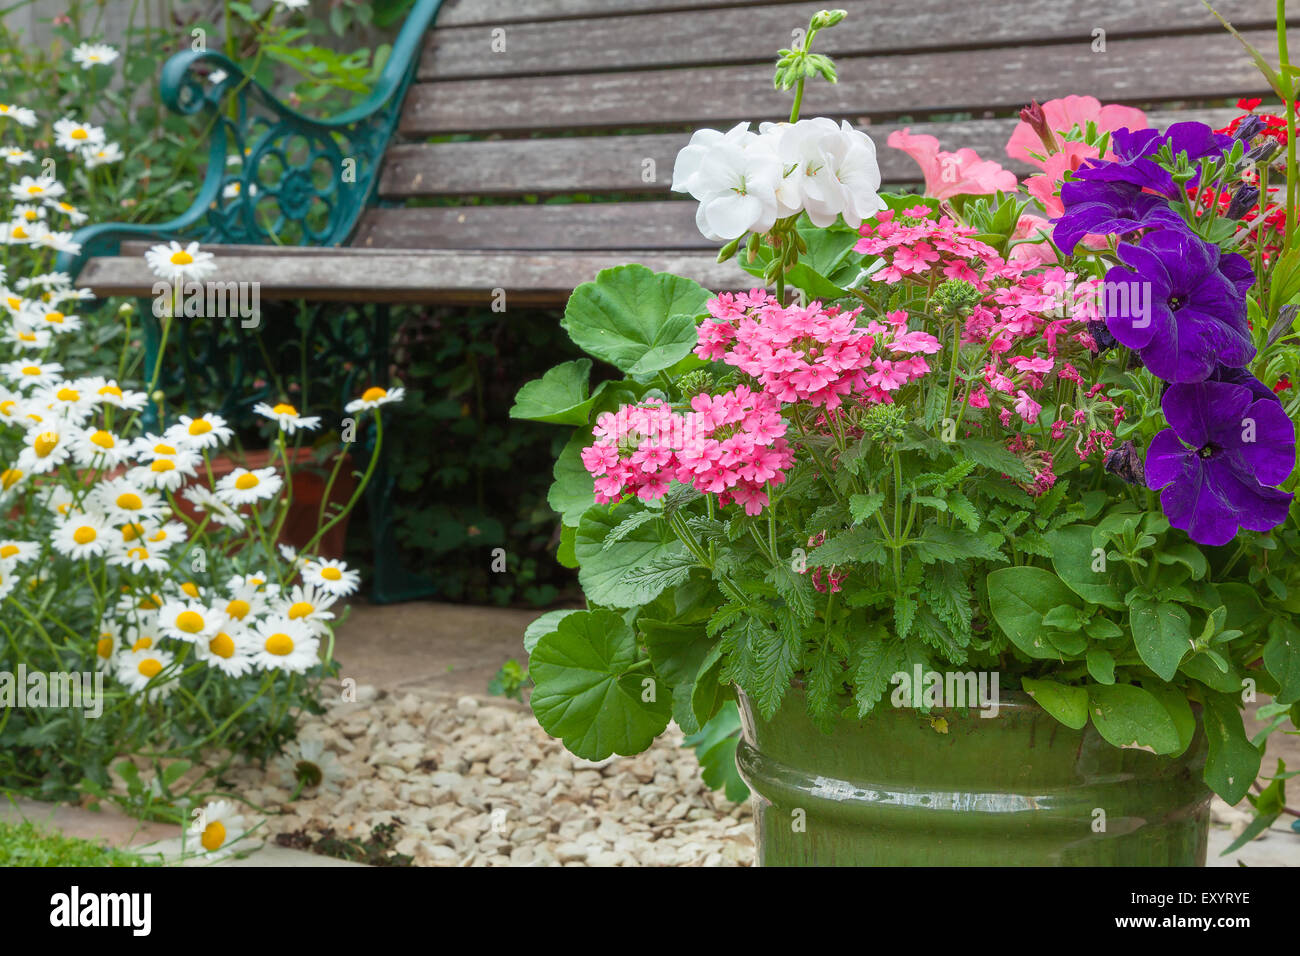 bauerngarten mit holzbank und blumen in containern stockfoto bild 85434034 alamy. Black Bedroom Furniture Sets. Home Design Ideas